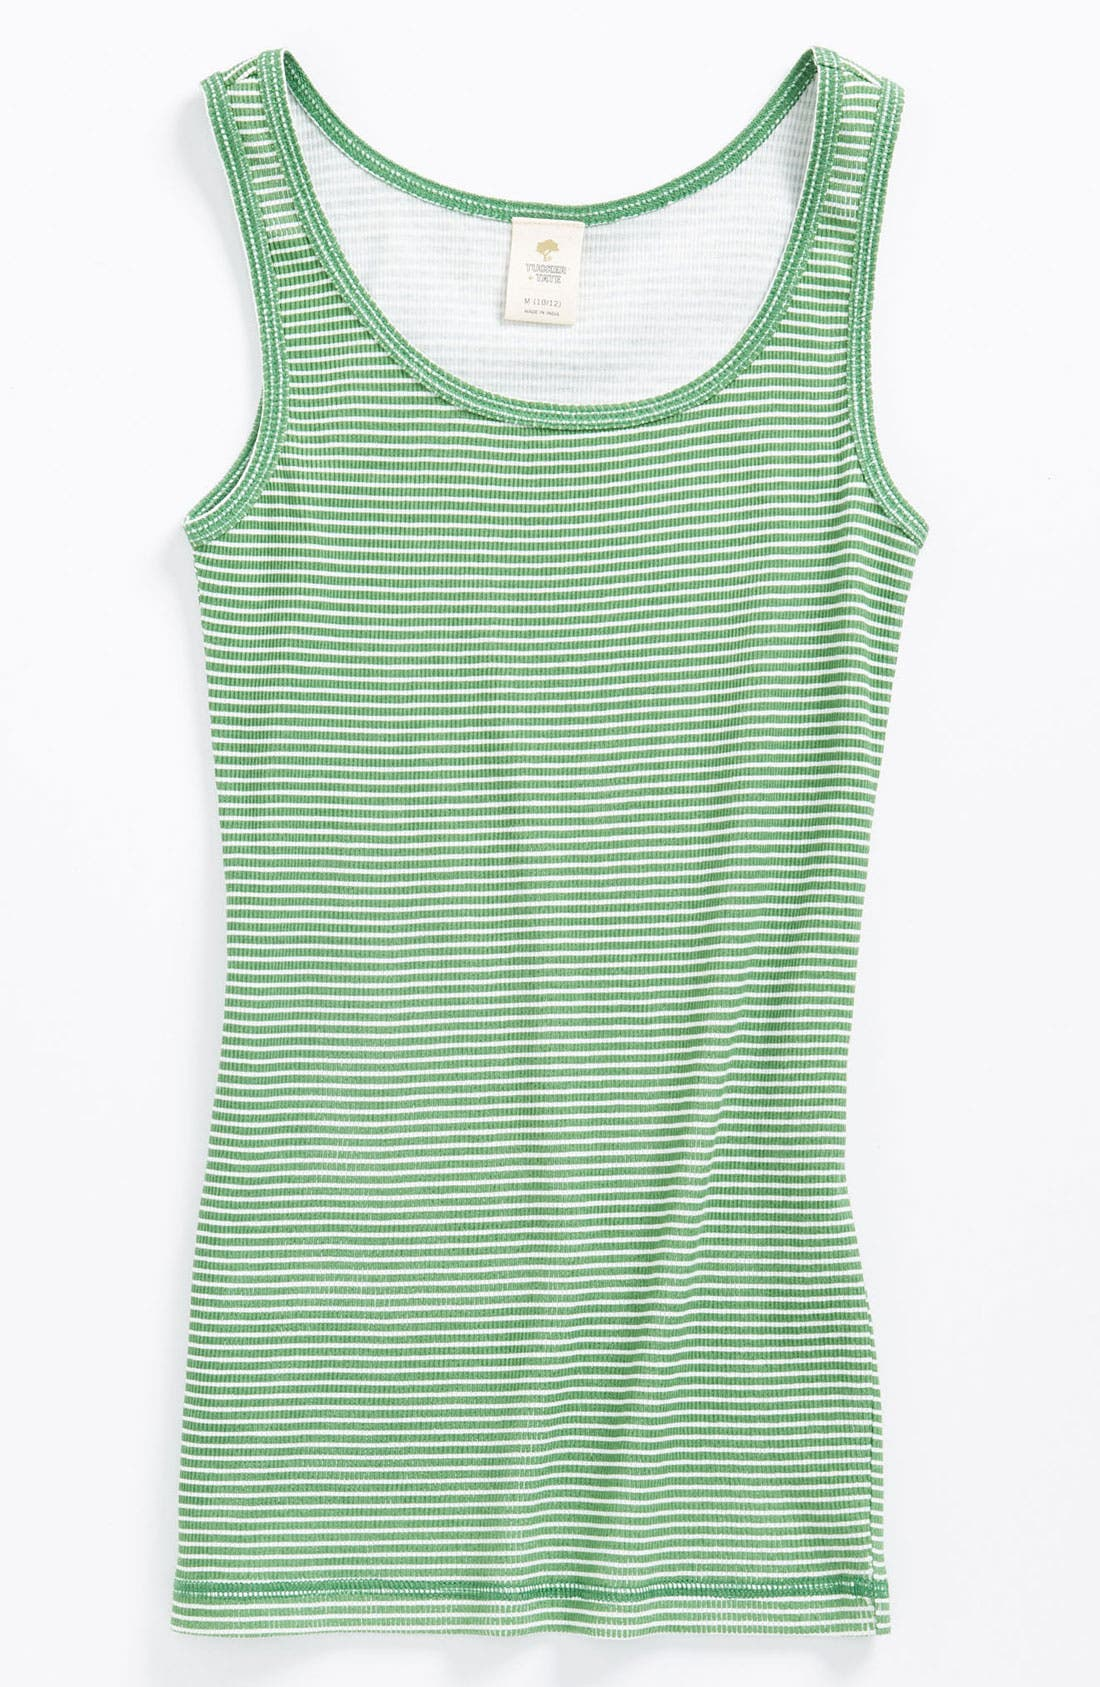 Alternate Image 1 Selected - Tucker + Tate 'Mandy' Stripe Tank Top (Big Girls)